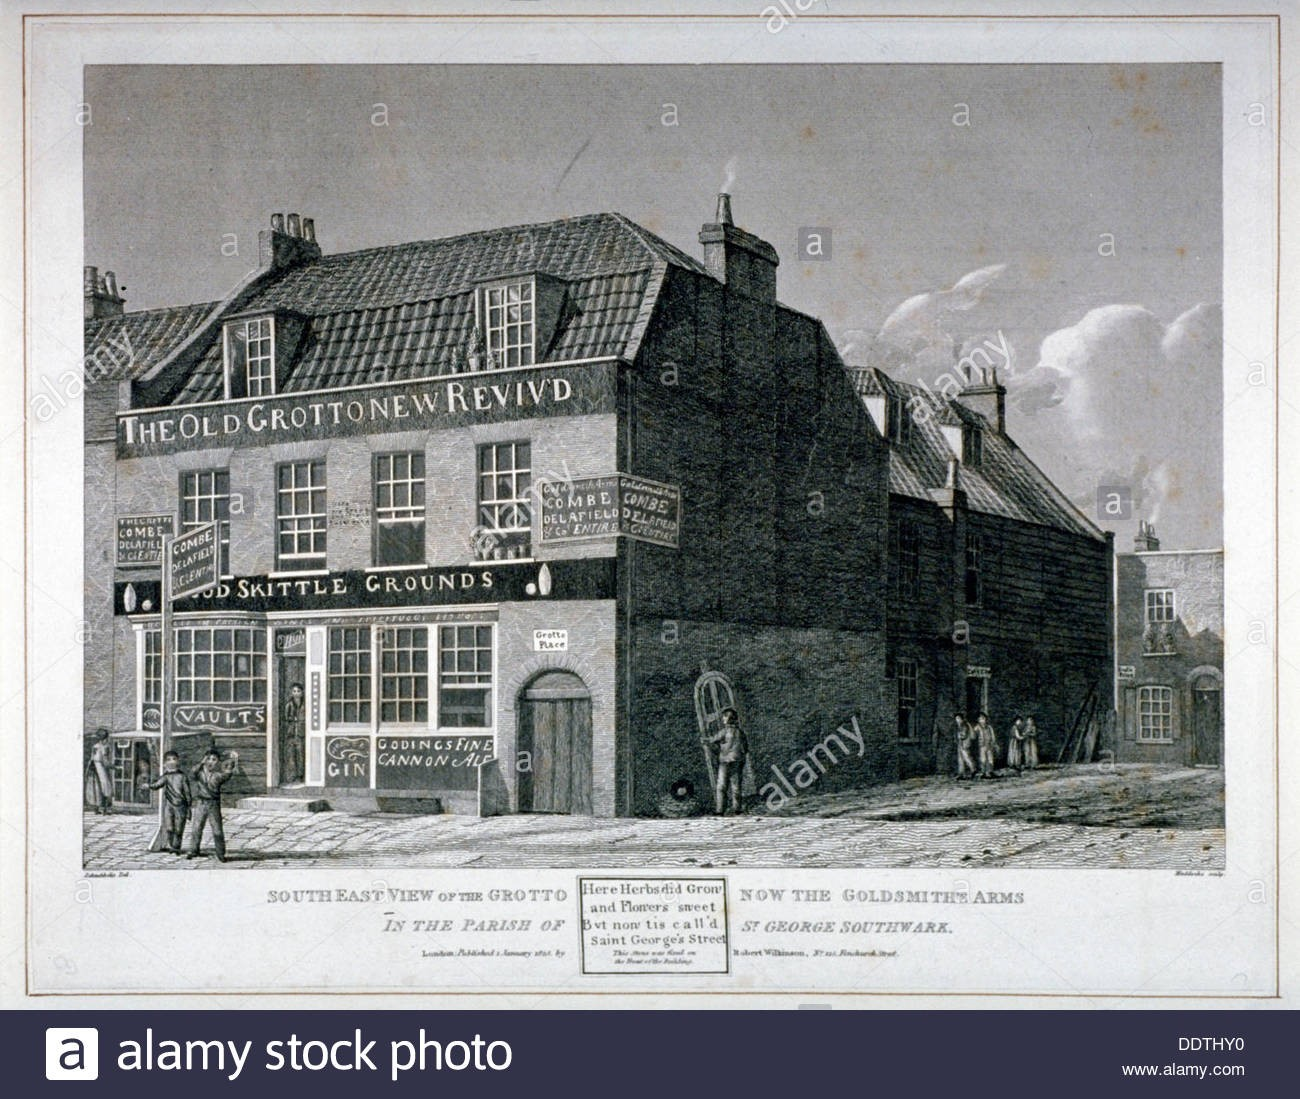 South-east view of the Grotto Inn, St Georges Street, Southwark, London, 1825. Roughly where the.jpg